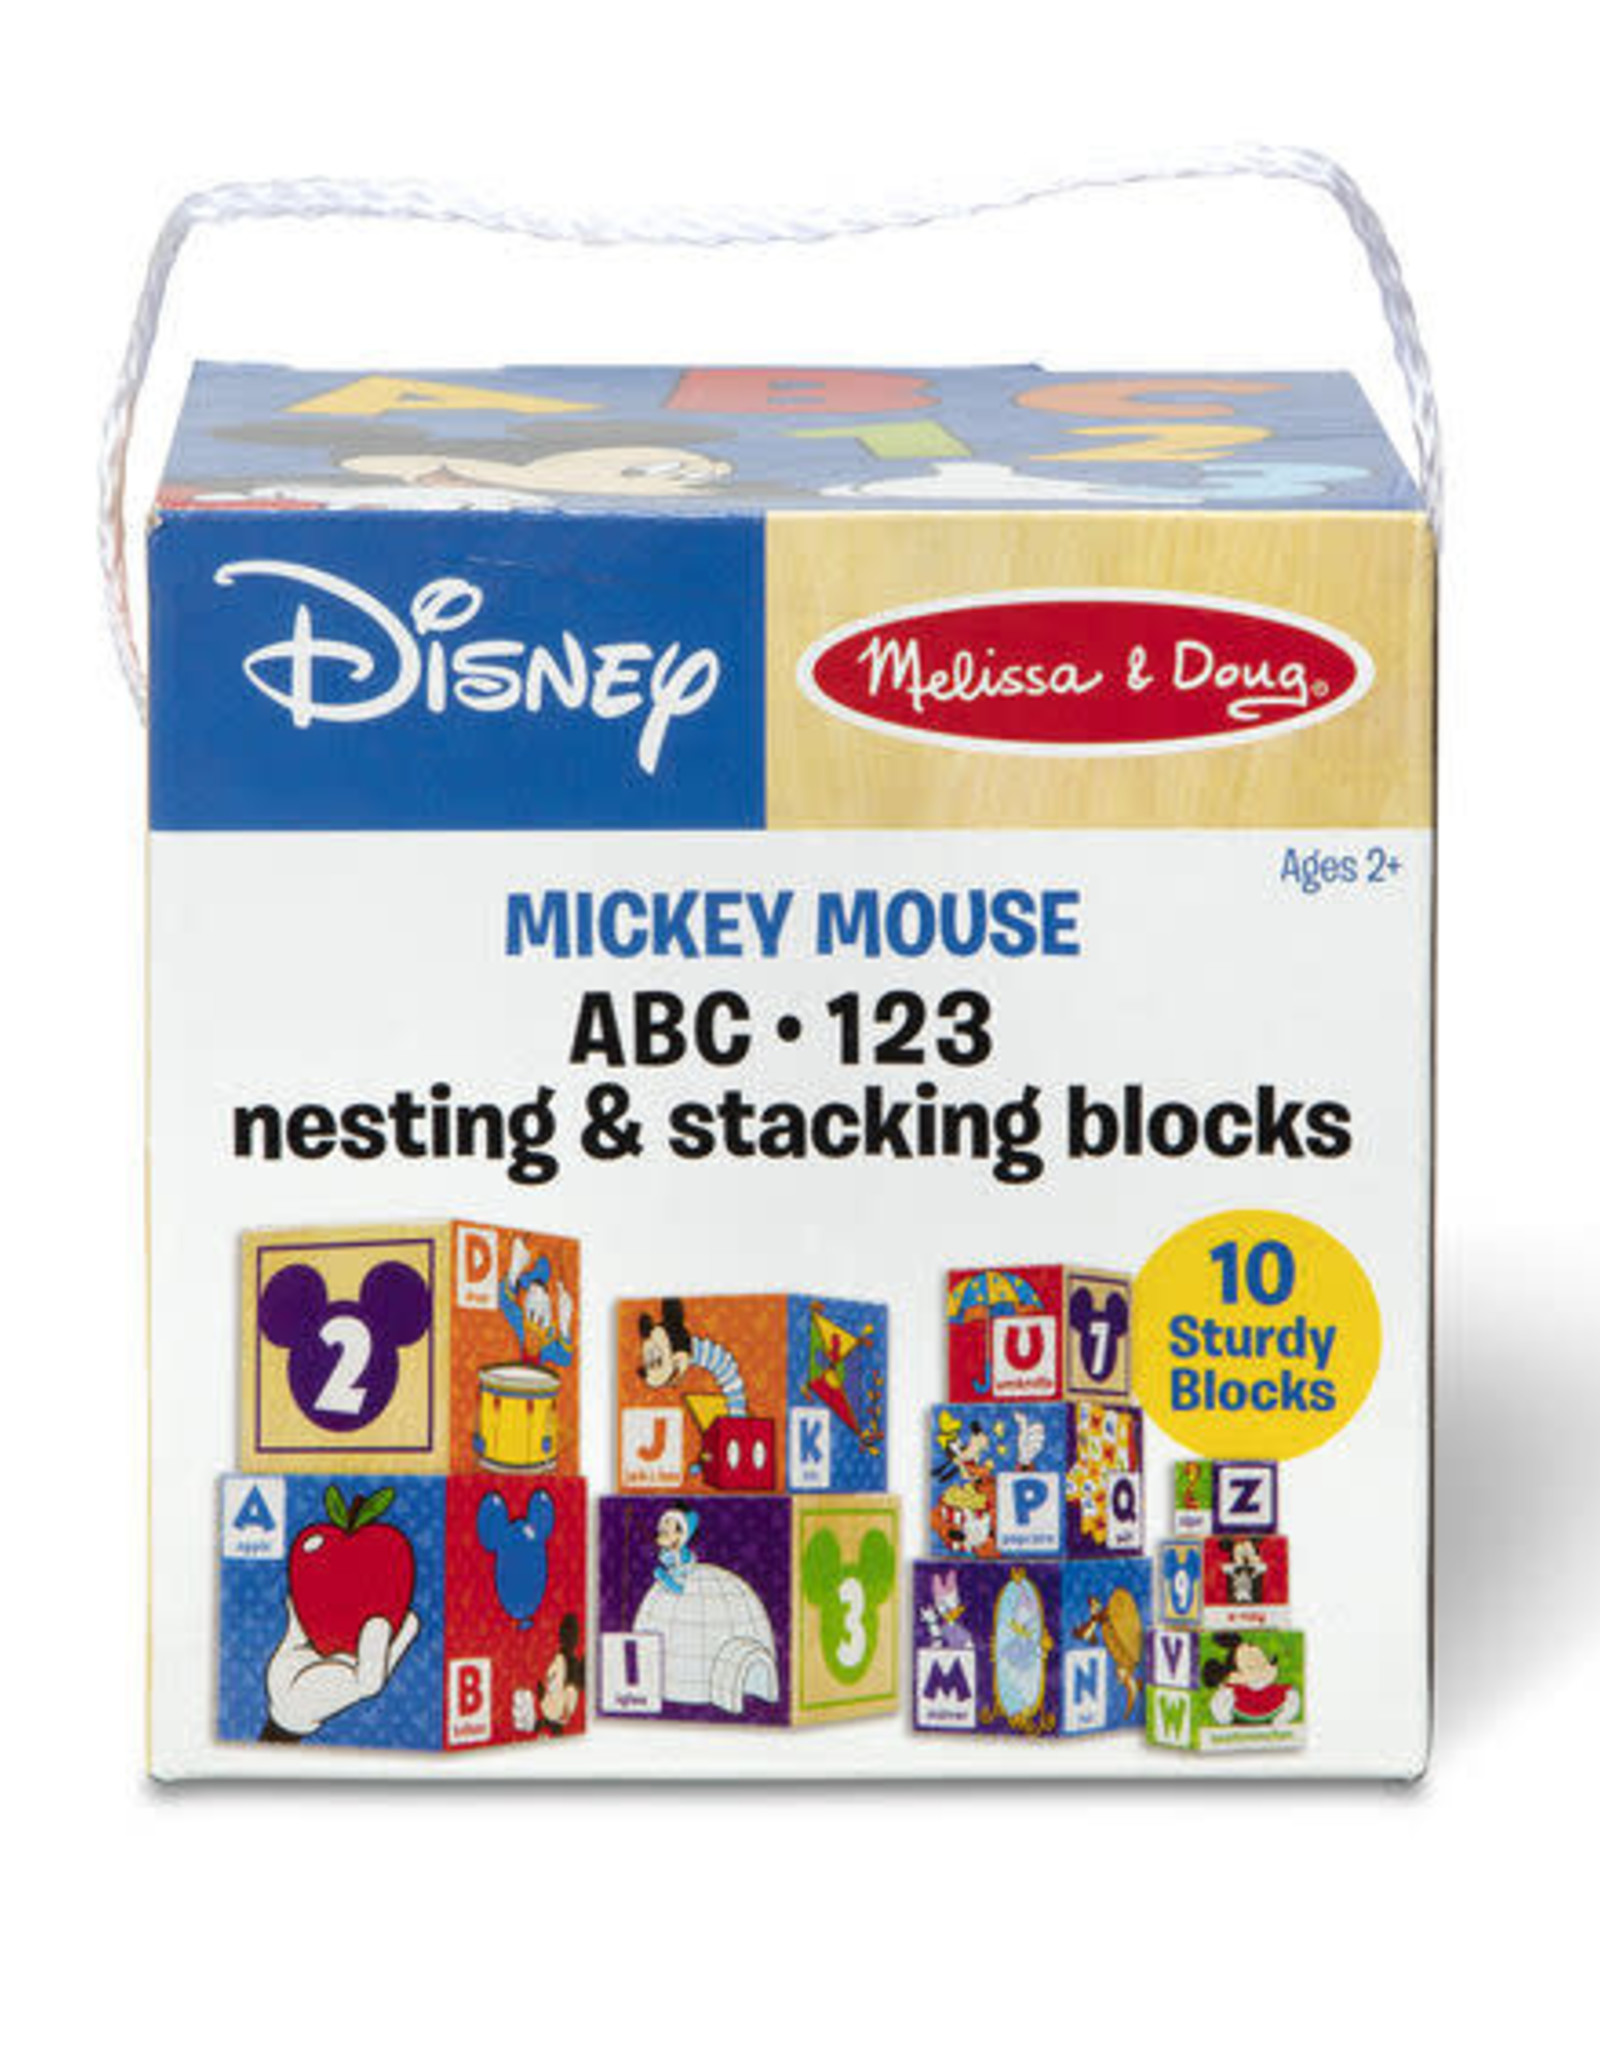 Melissa & Doug MD Mickey Mouse ABC 123 Nesting Stacking Blocks